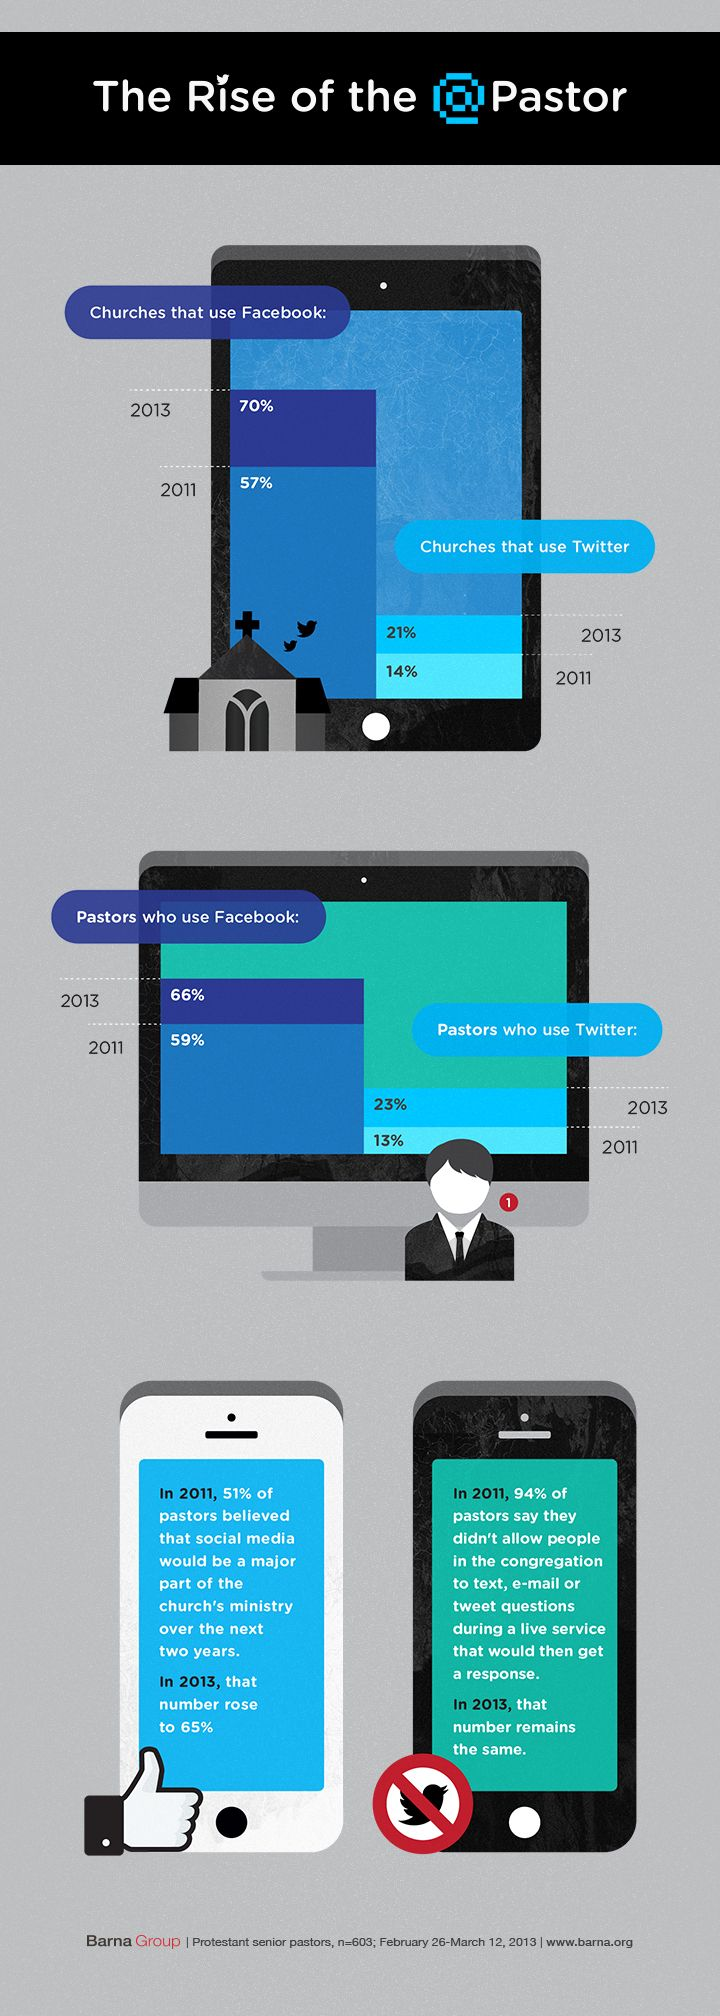 The Rise of the @Earl Rapp (or Late Social Media Adopters) infographic